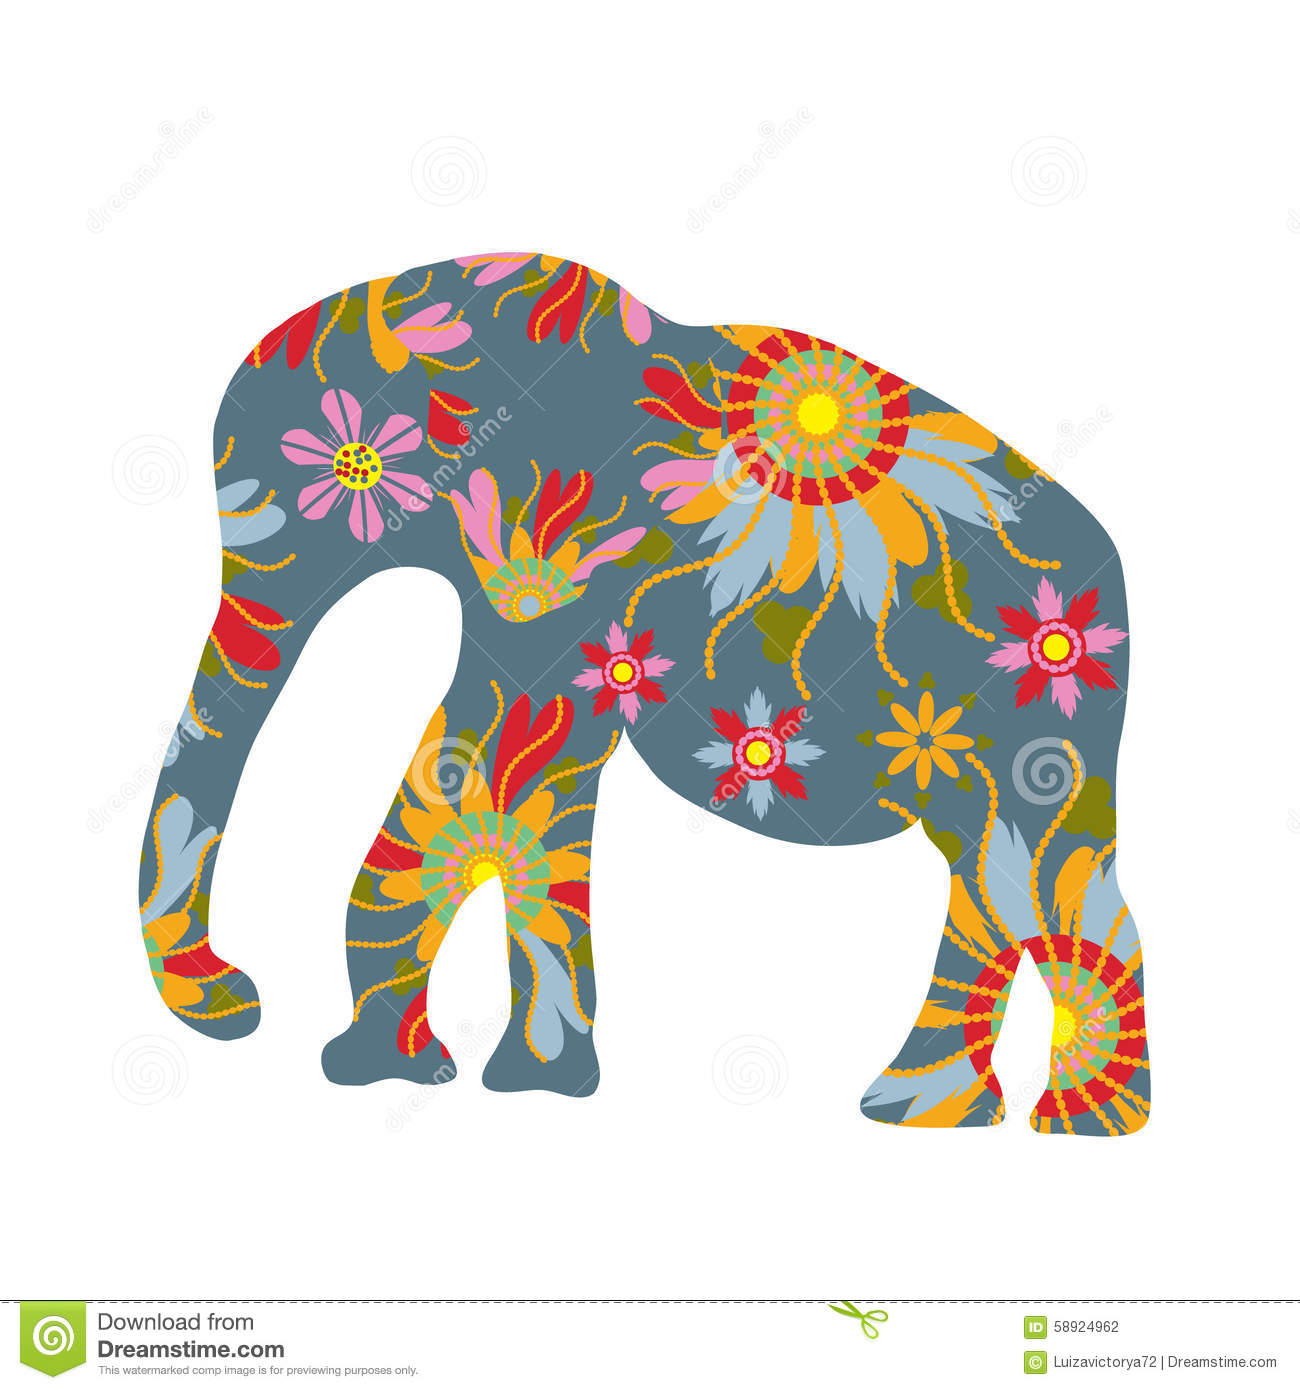 Air Lines Thai Colorful Print With Elephant Silhouette, Image Stock